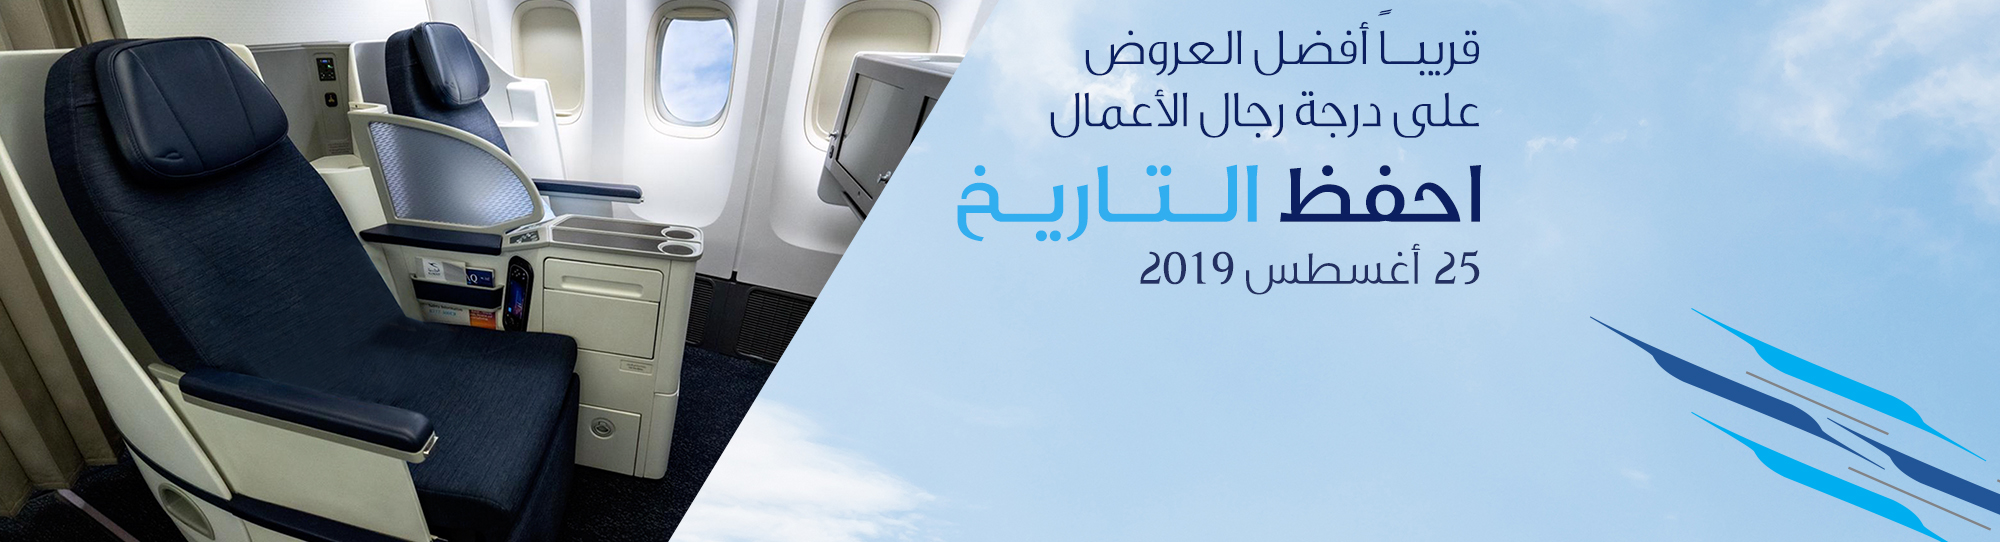 Kuwait Airways - Official Site